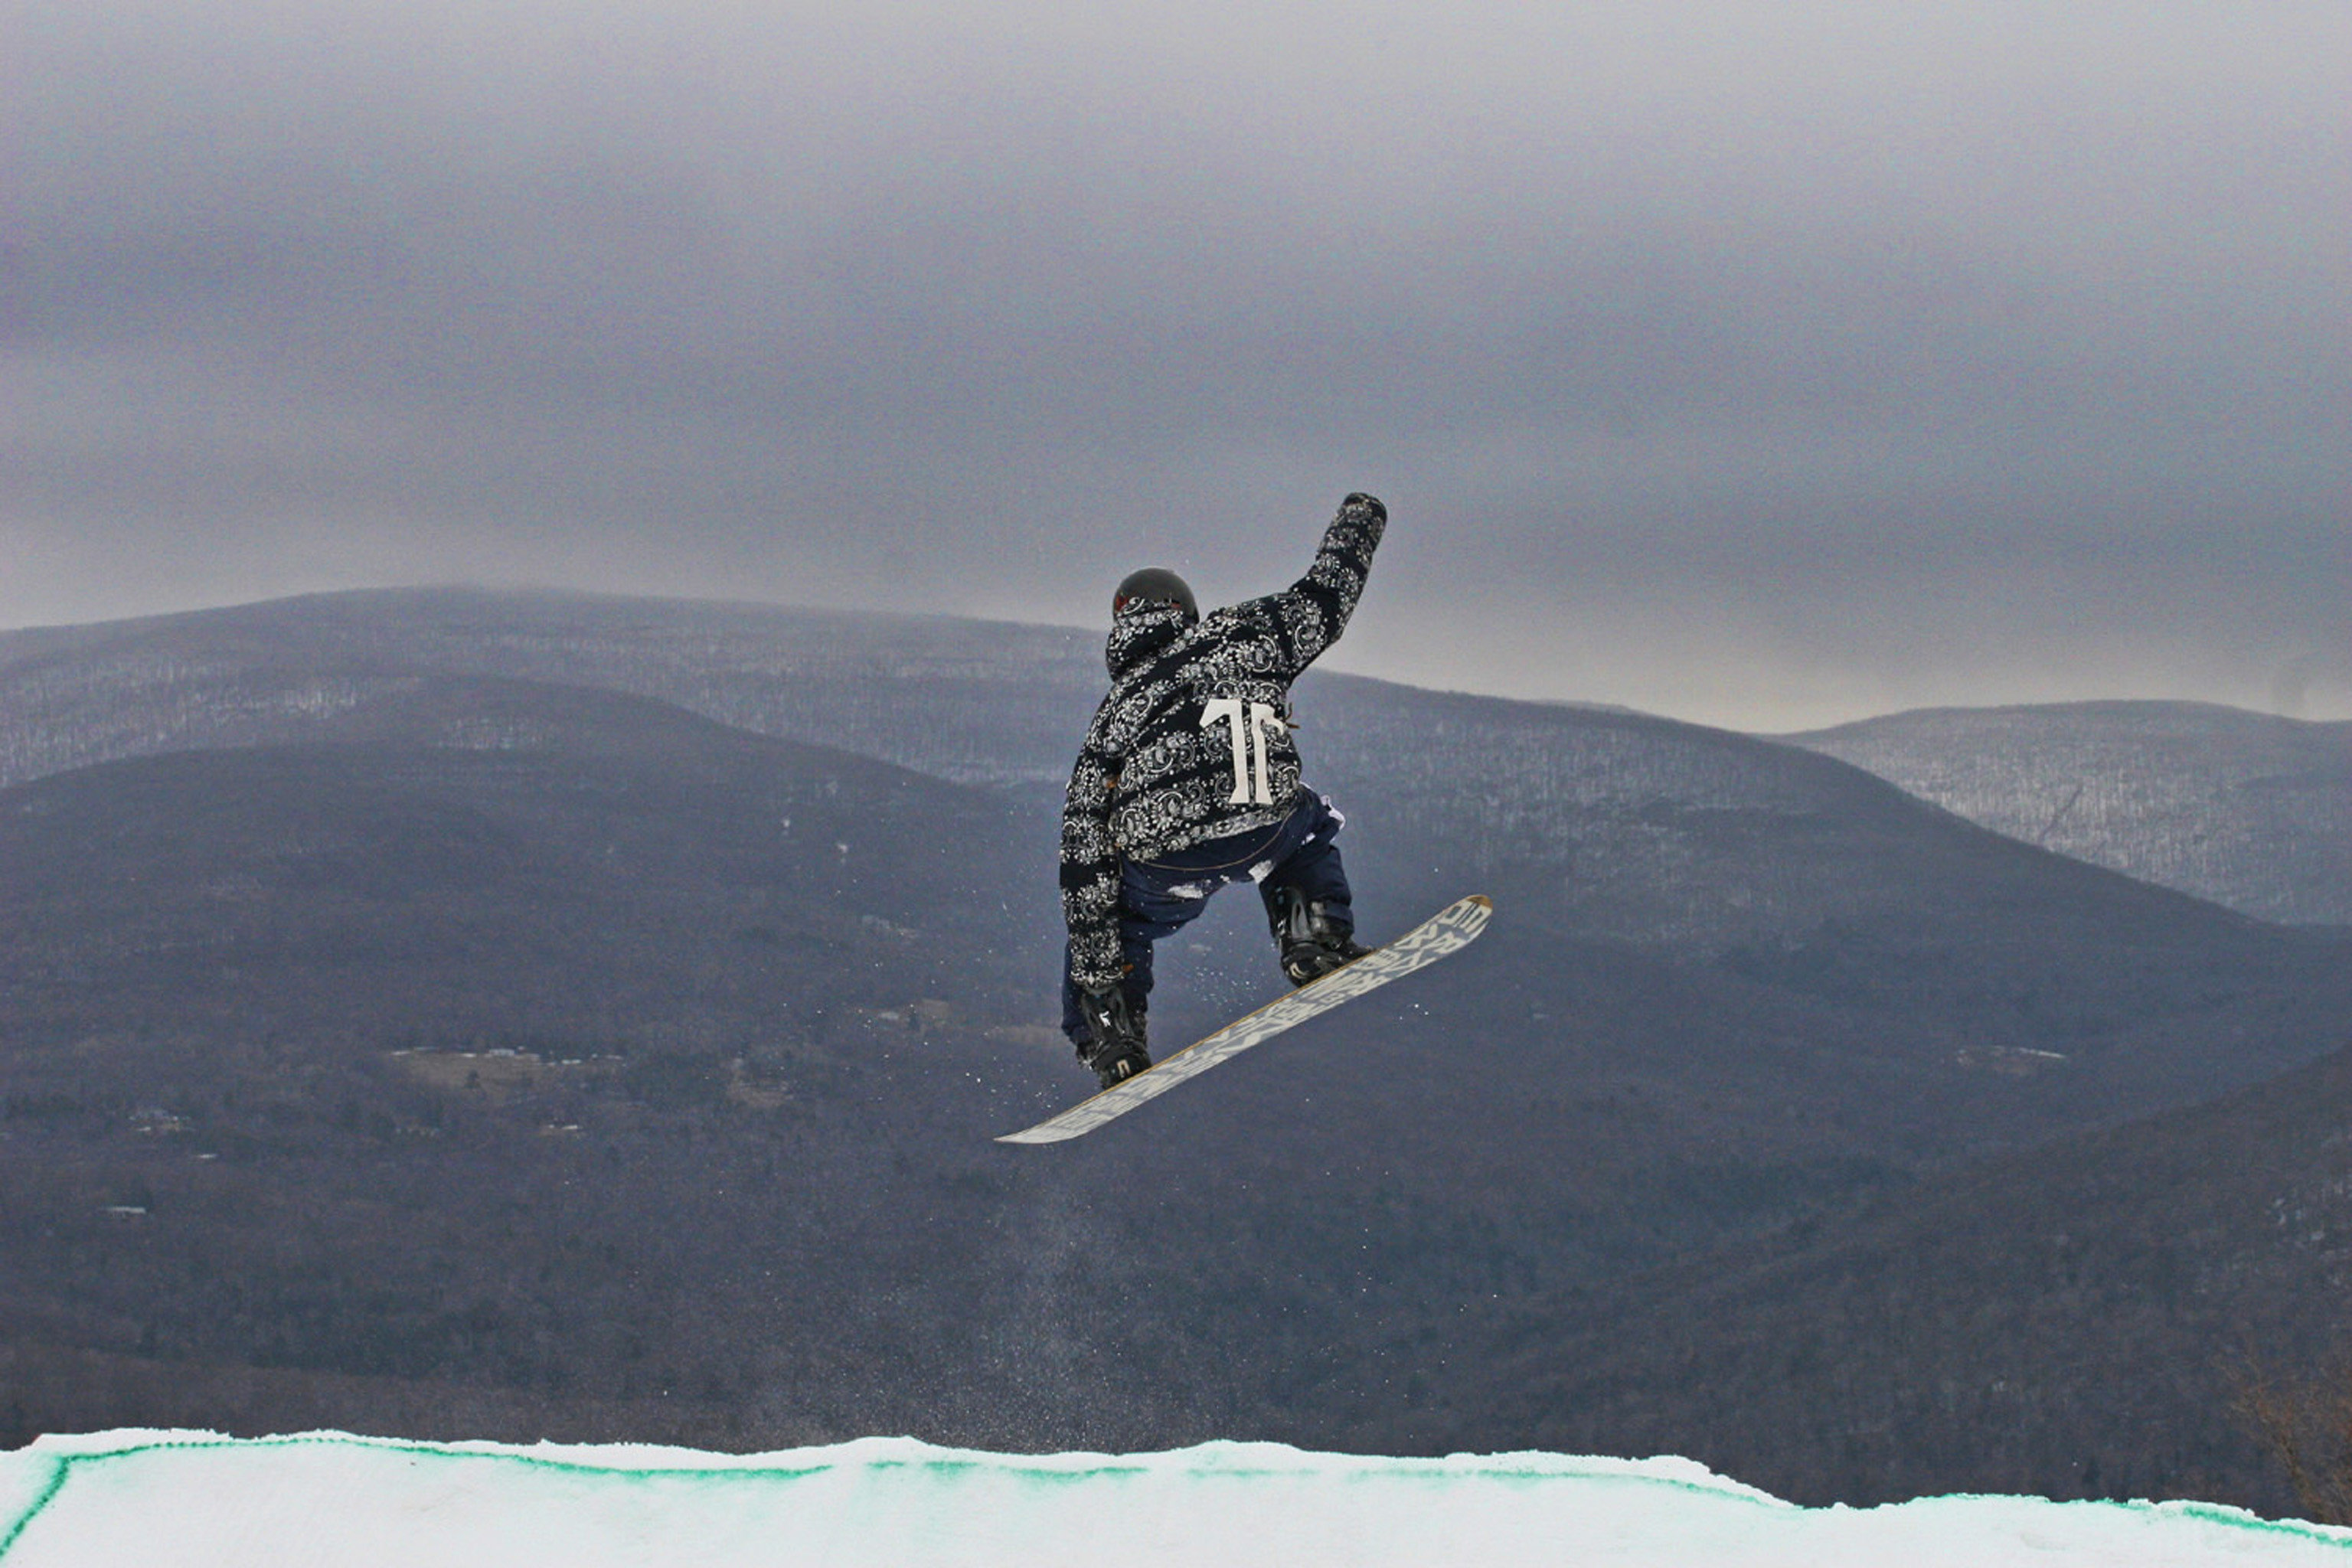 Adventure Country Scenic views Sport sky mountain snowboarding snow snowboard air weather Winter winter sport sports jumping boardsport atmosphere of earth hill extreme sport freestyle skiing summit sports equipment high day